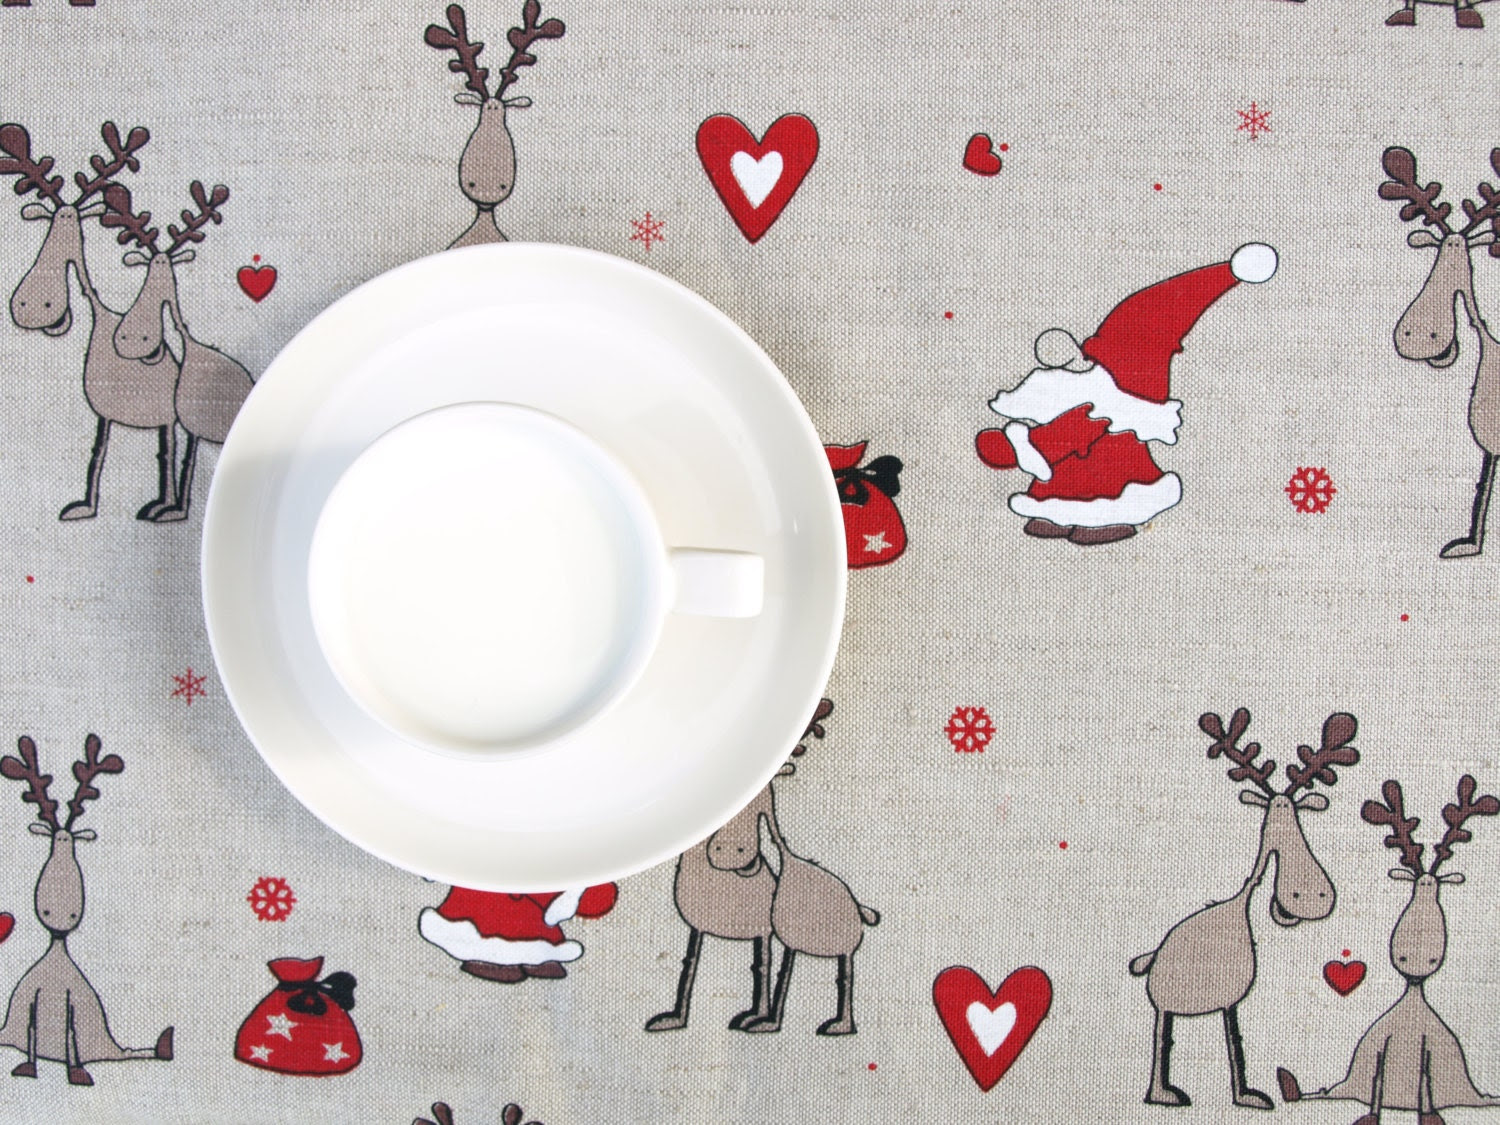 Christmas Linen tablecloth Rain deers Santa Claus Elf Tomten decor Natural Linen Eco Friendly, runner , towel , curtains available ,eco GIFT